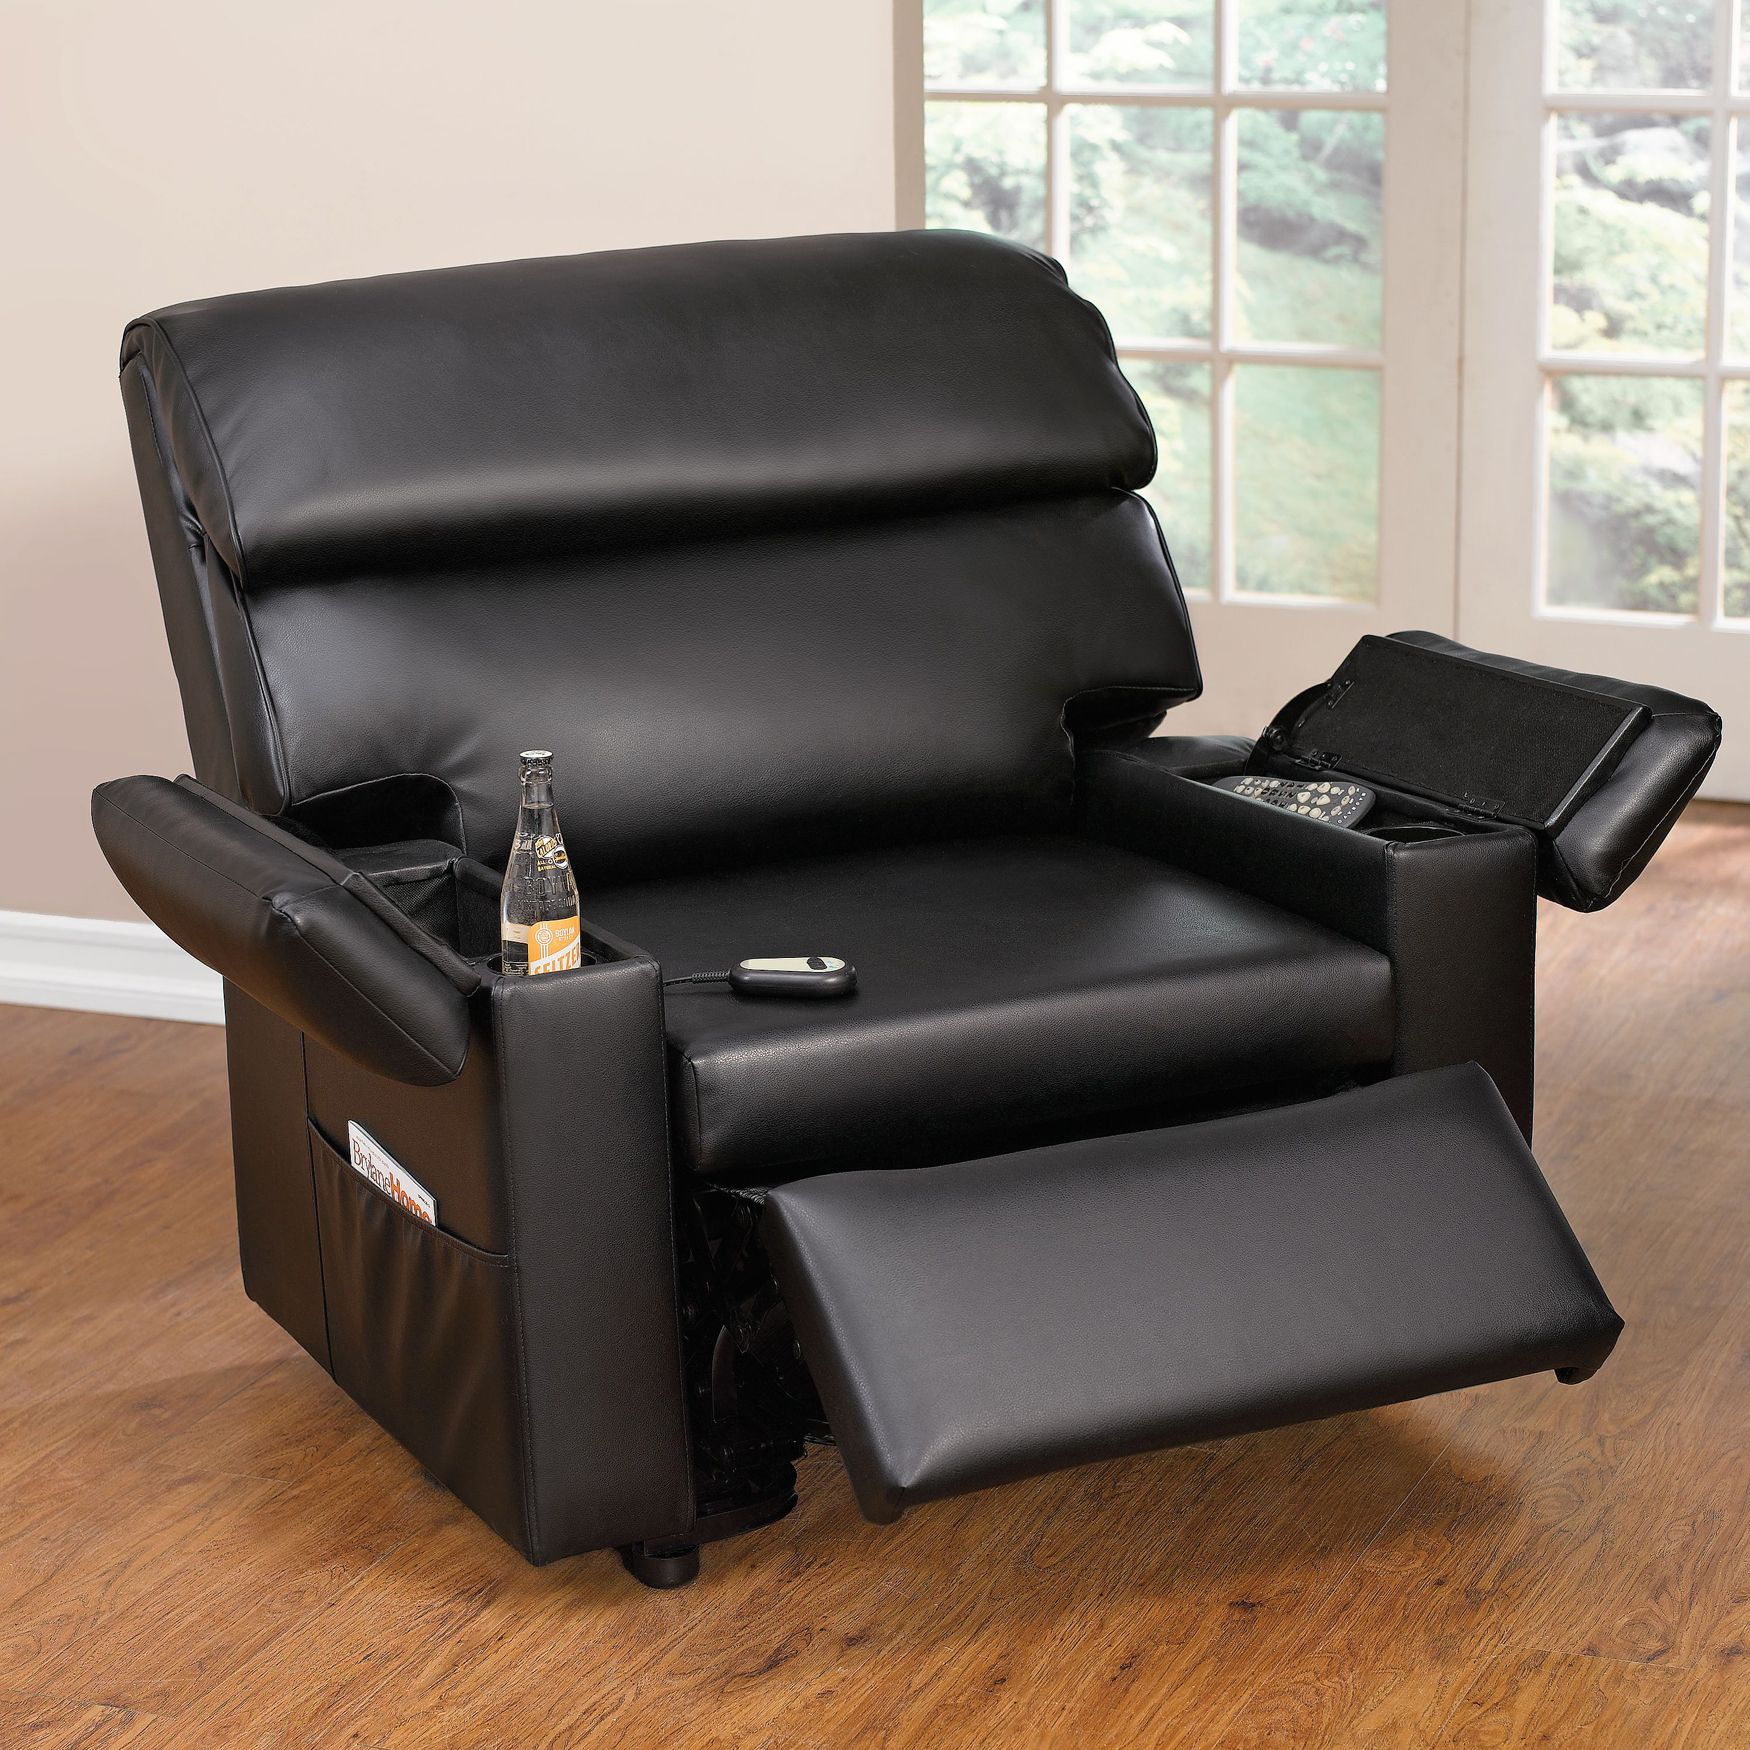 Extra Wide Leather-Look Power-Lift Chair with Storage Arms | Extra Large Chairs & Extra Wide Leather-Look Power-Lift Chair with Storage Arms | Extra ... islam-shia.org